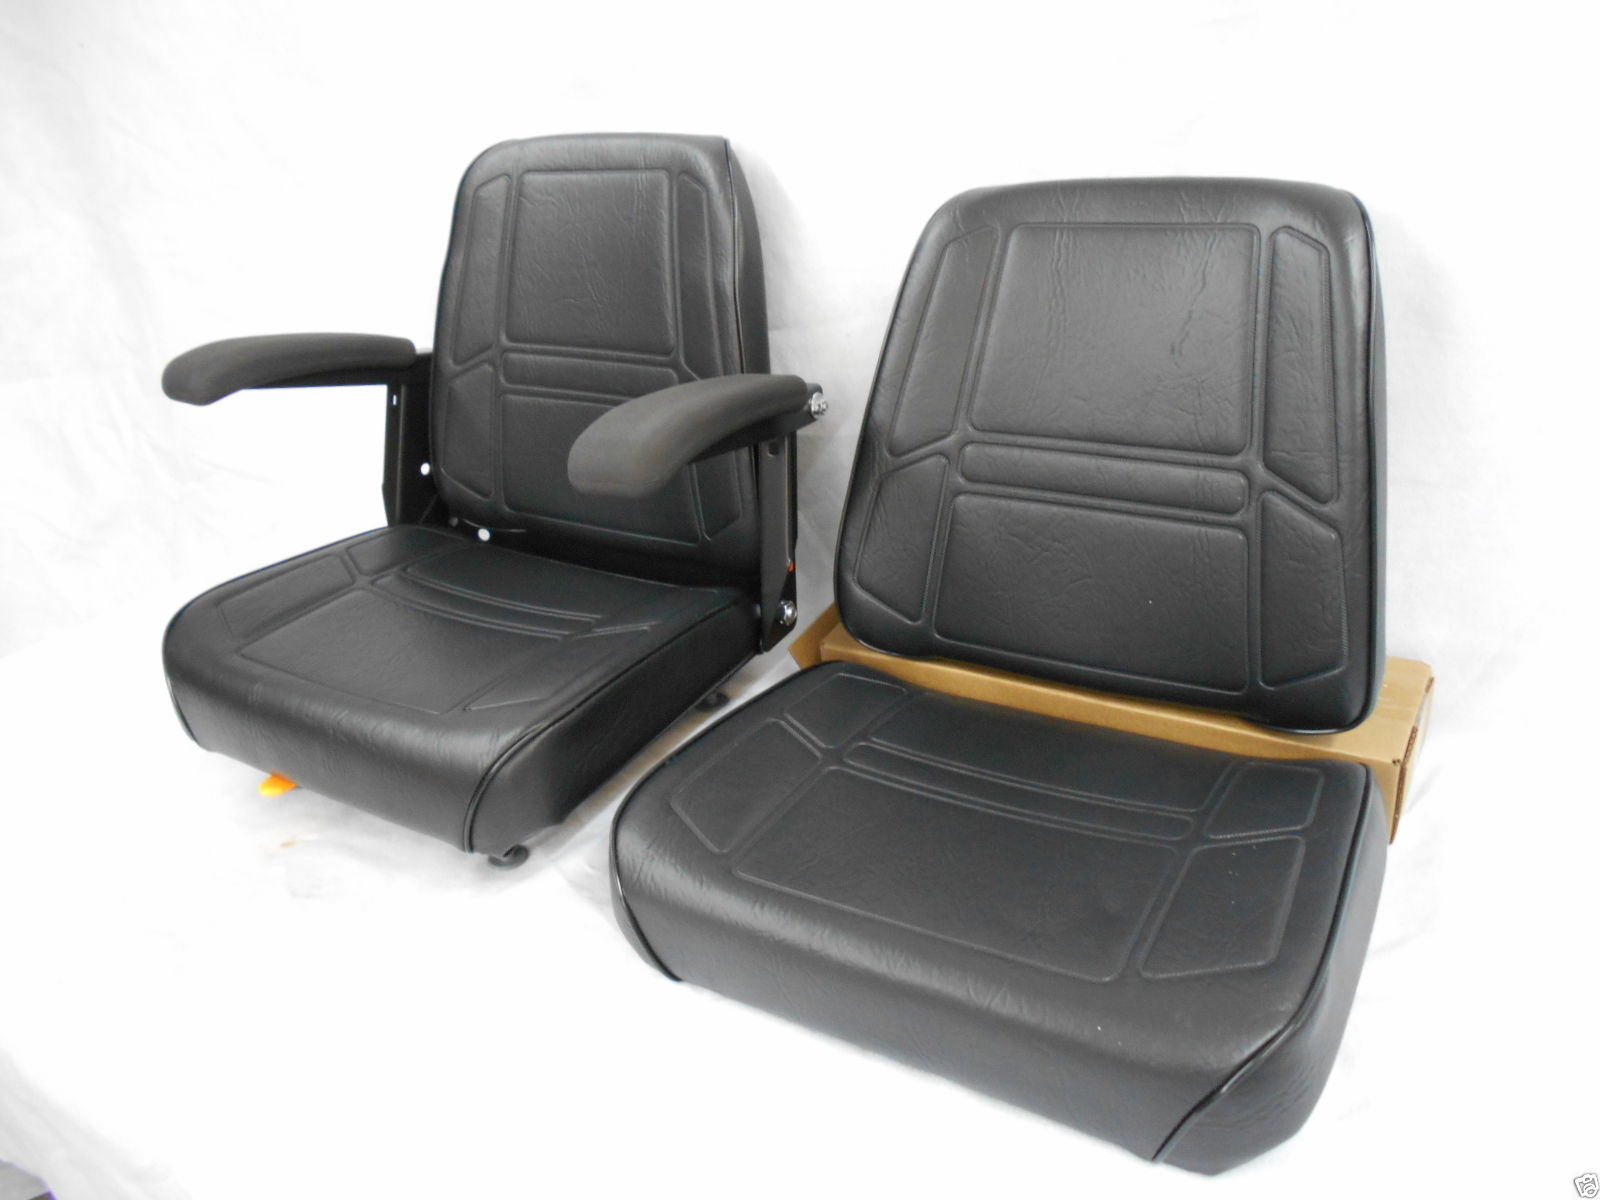 kubota seat replacement cushion set m series tractor m4030 m4700 rh seat warehouse com Kubota M4900 Radio Wiring Diagram Kubota M4900 Dash Board